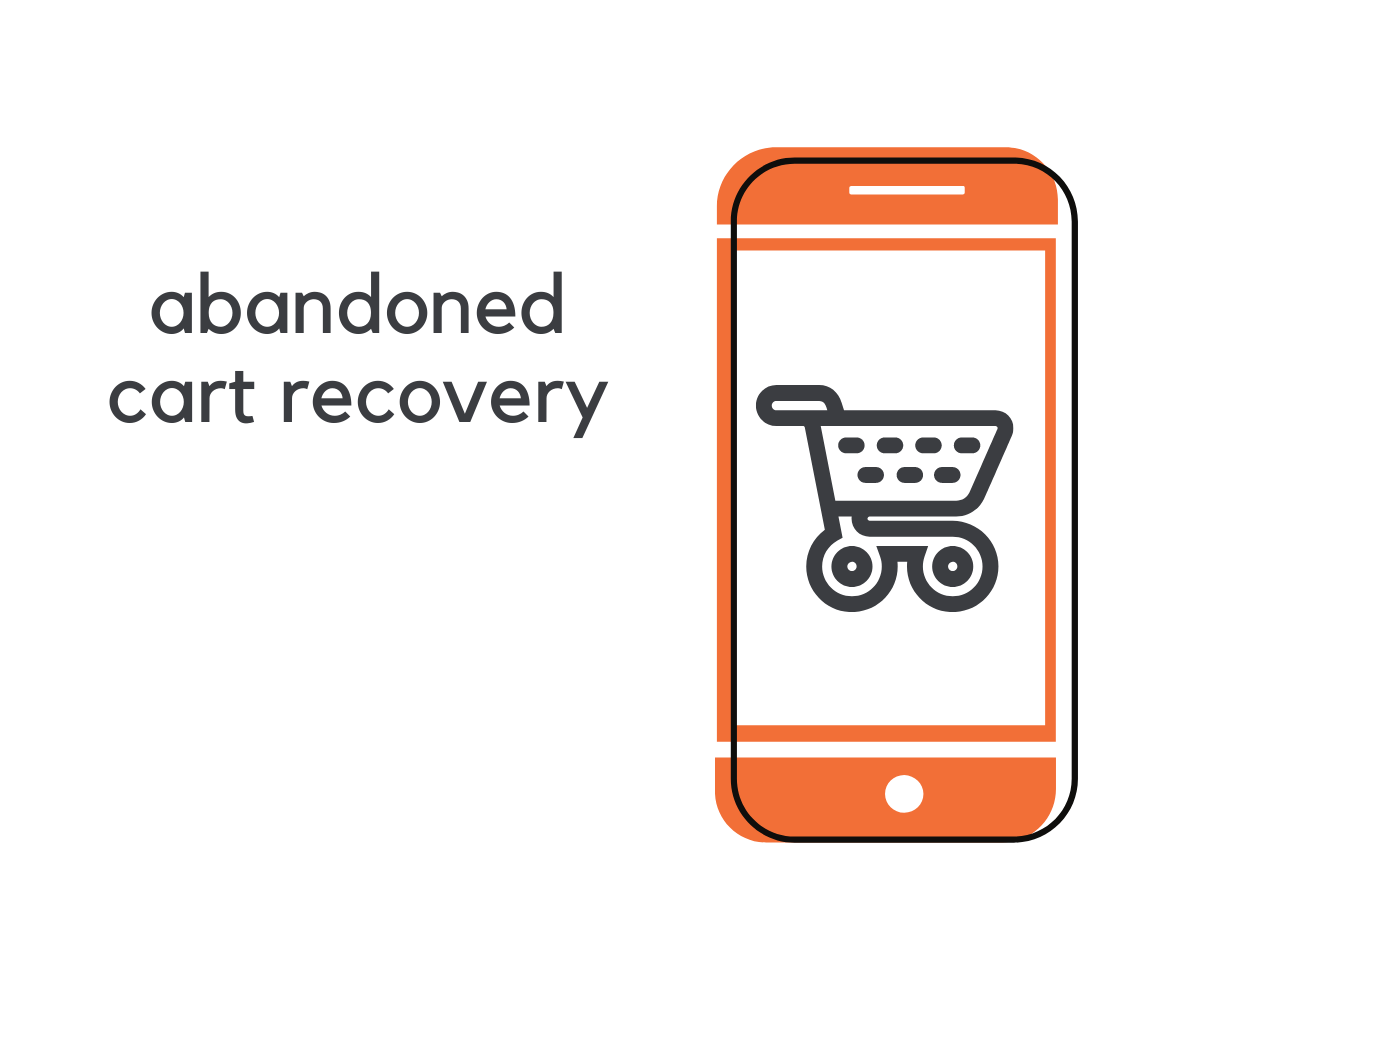 abandoned cart recovery chatbot demo